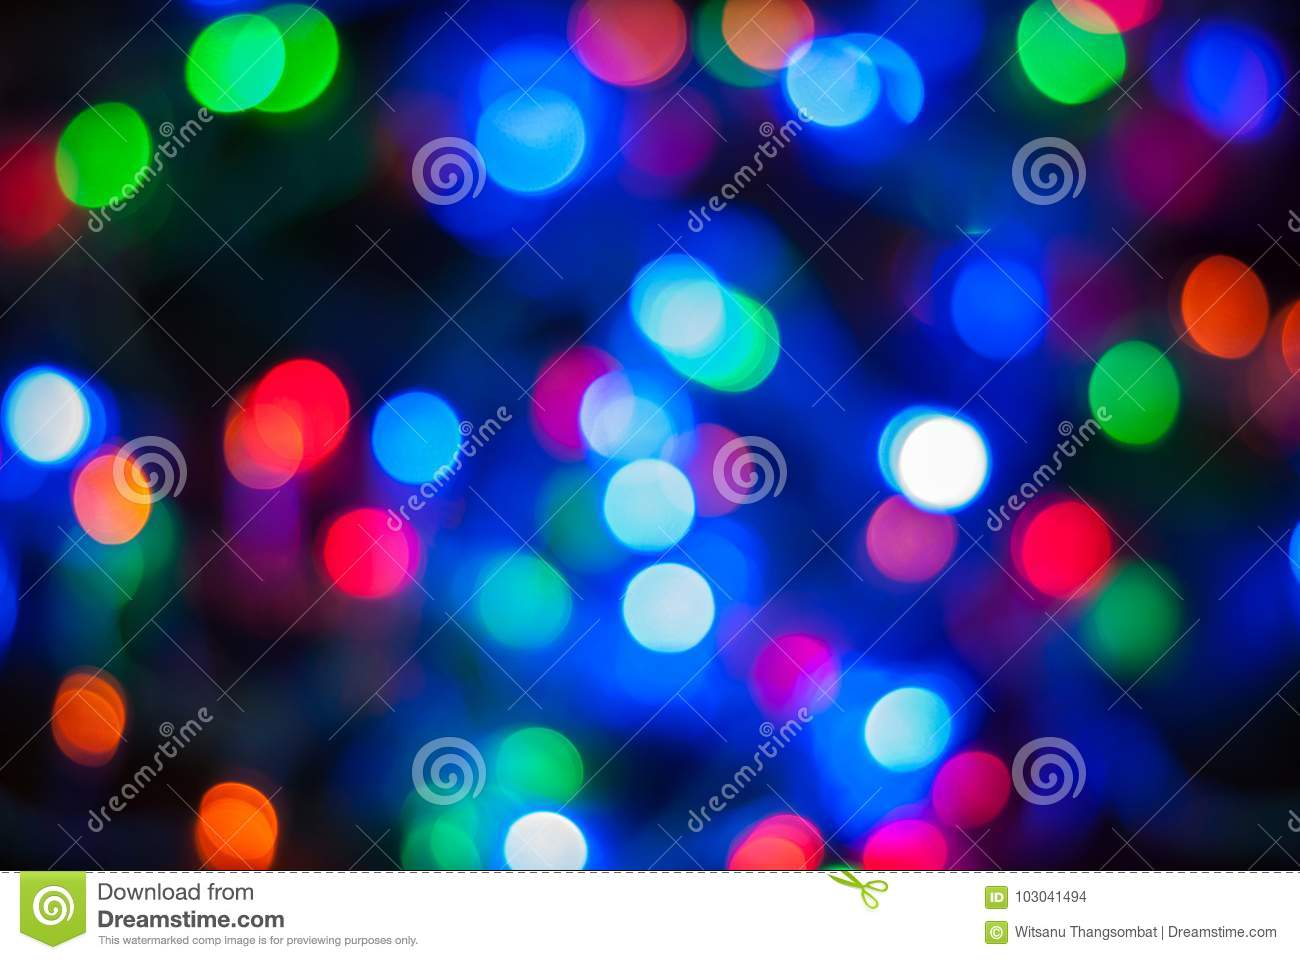 Download Light Glitter Vintage Backgroundbokeh Backgrounddefocused Happy BirthdayValentine Day